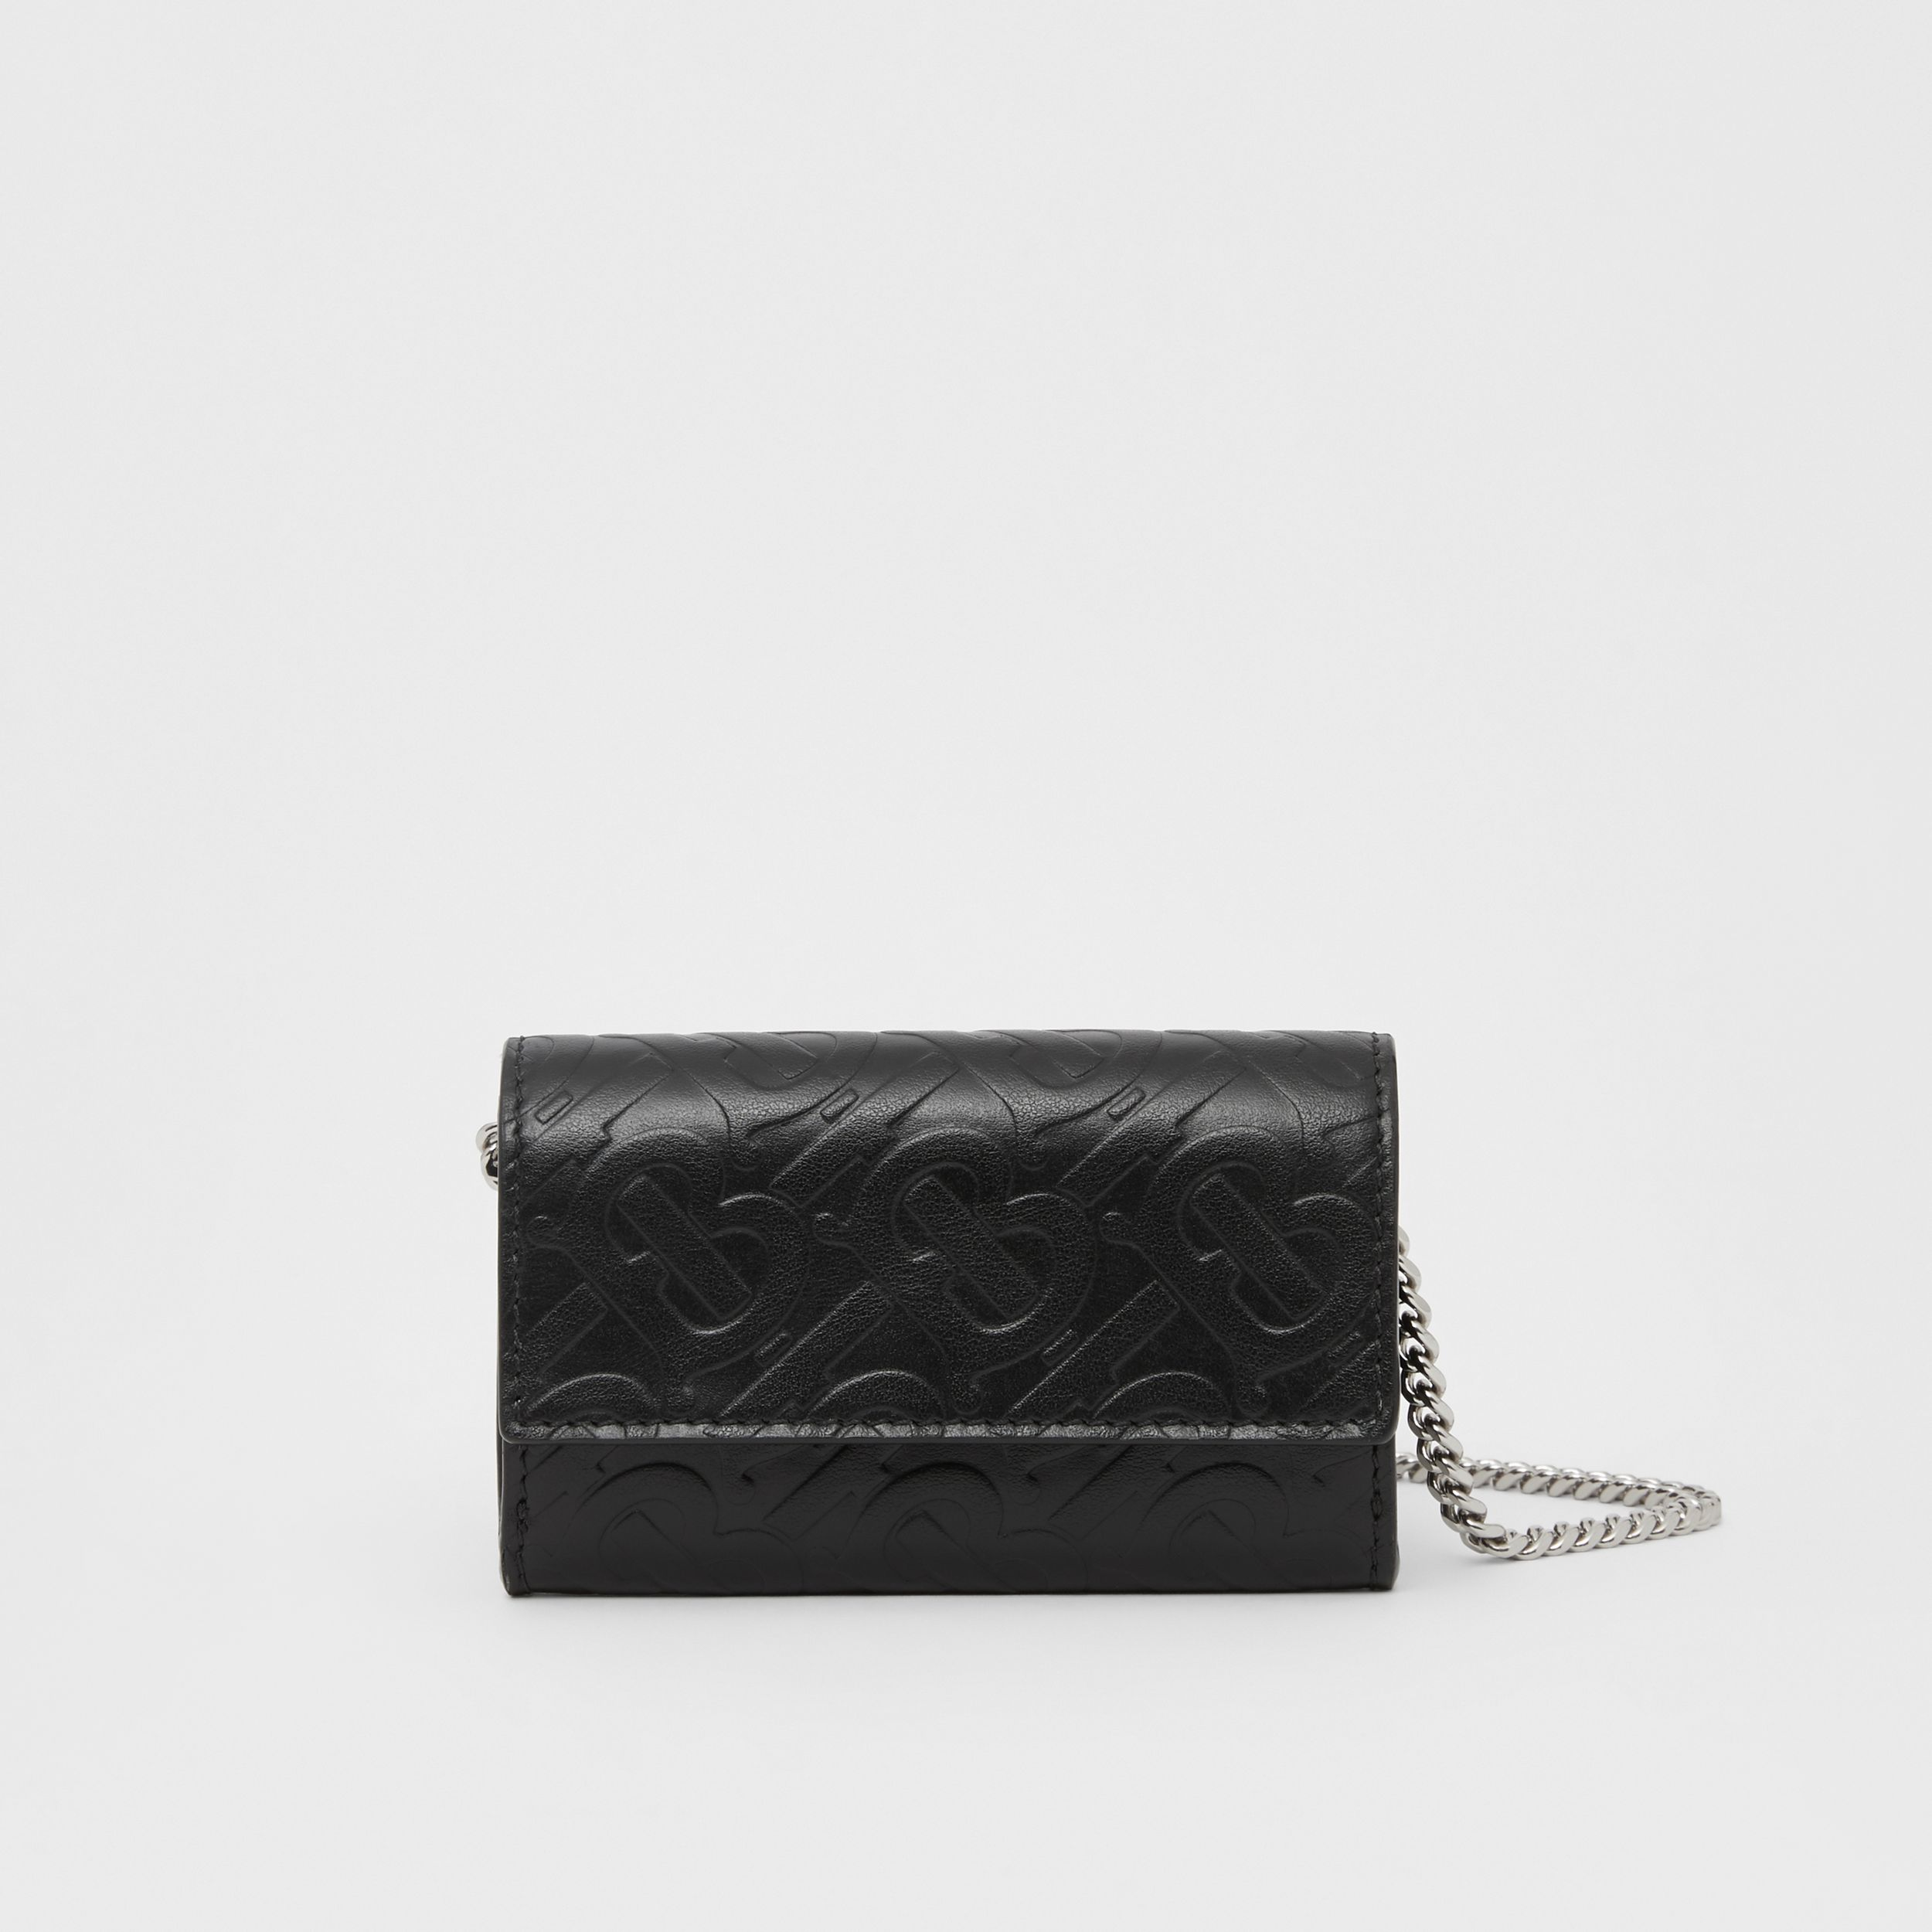 Small Monogram Leather Wallet with Detachable Strap in Black | Burberry - 1